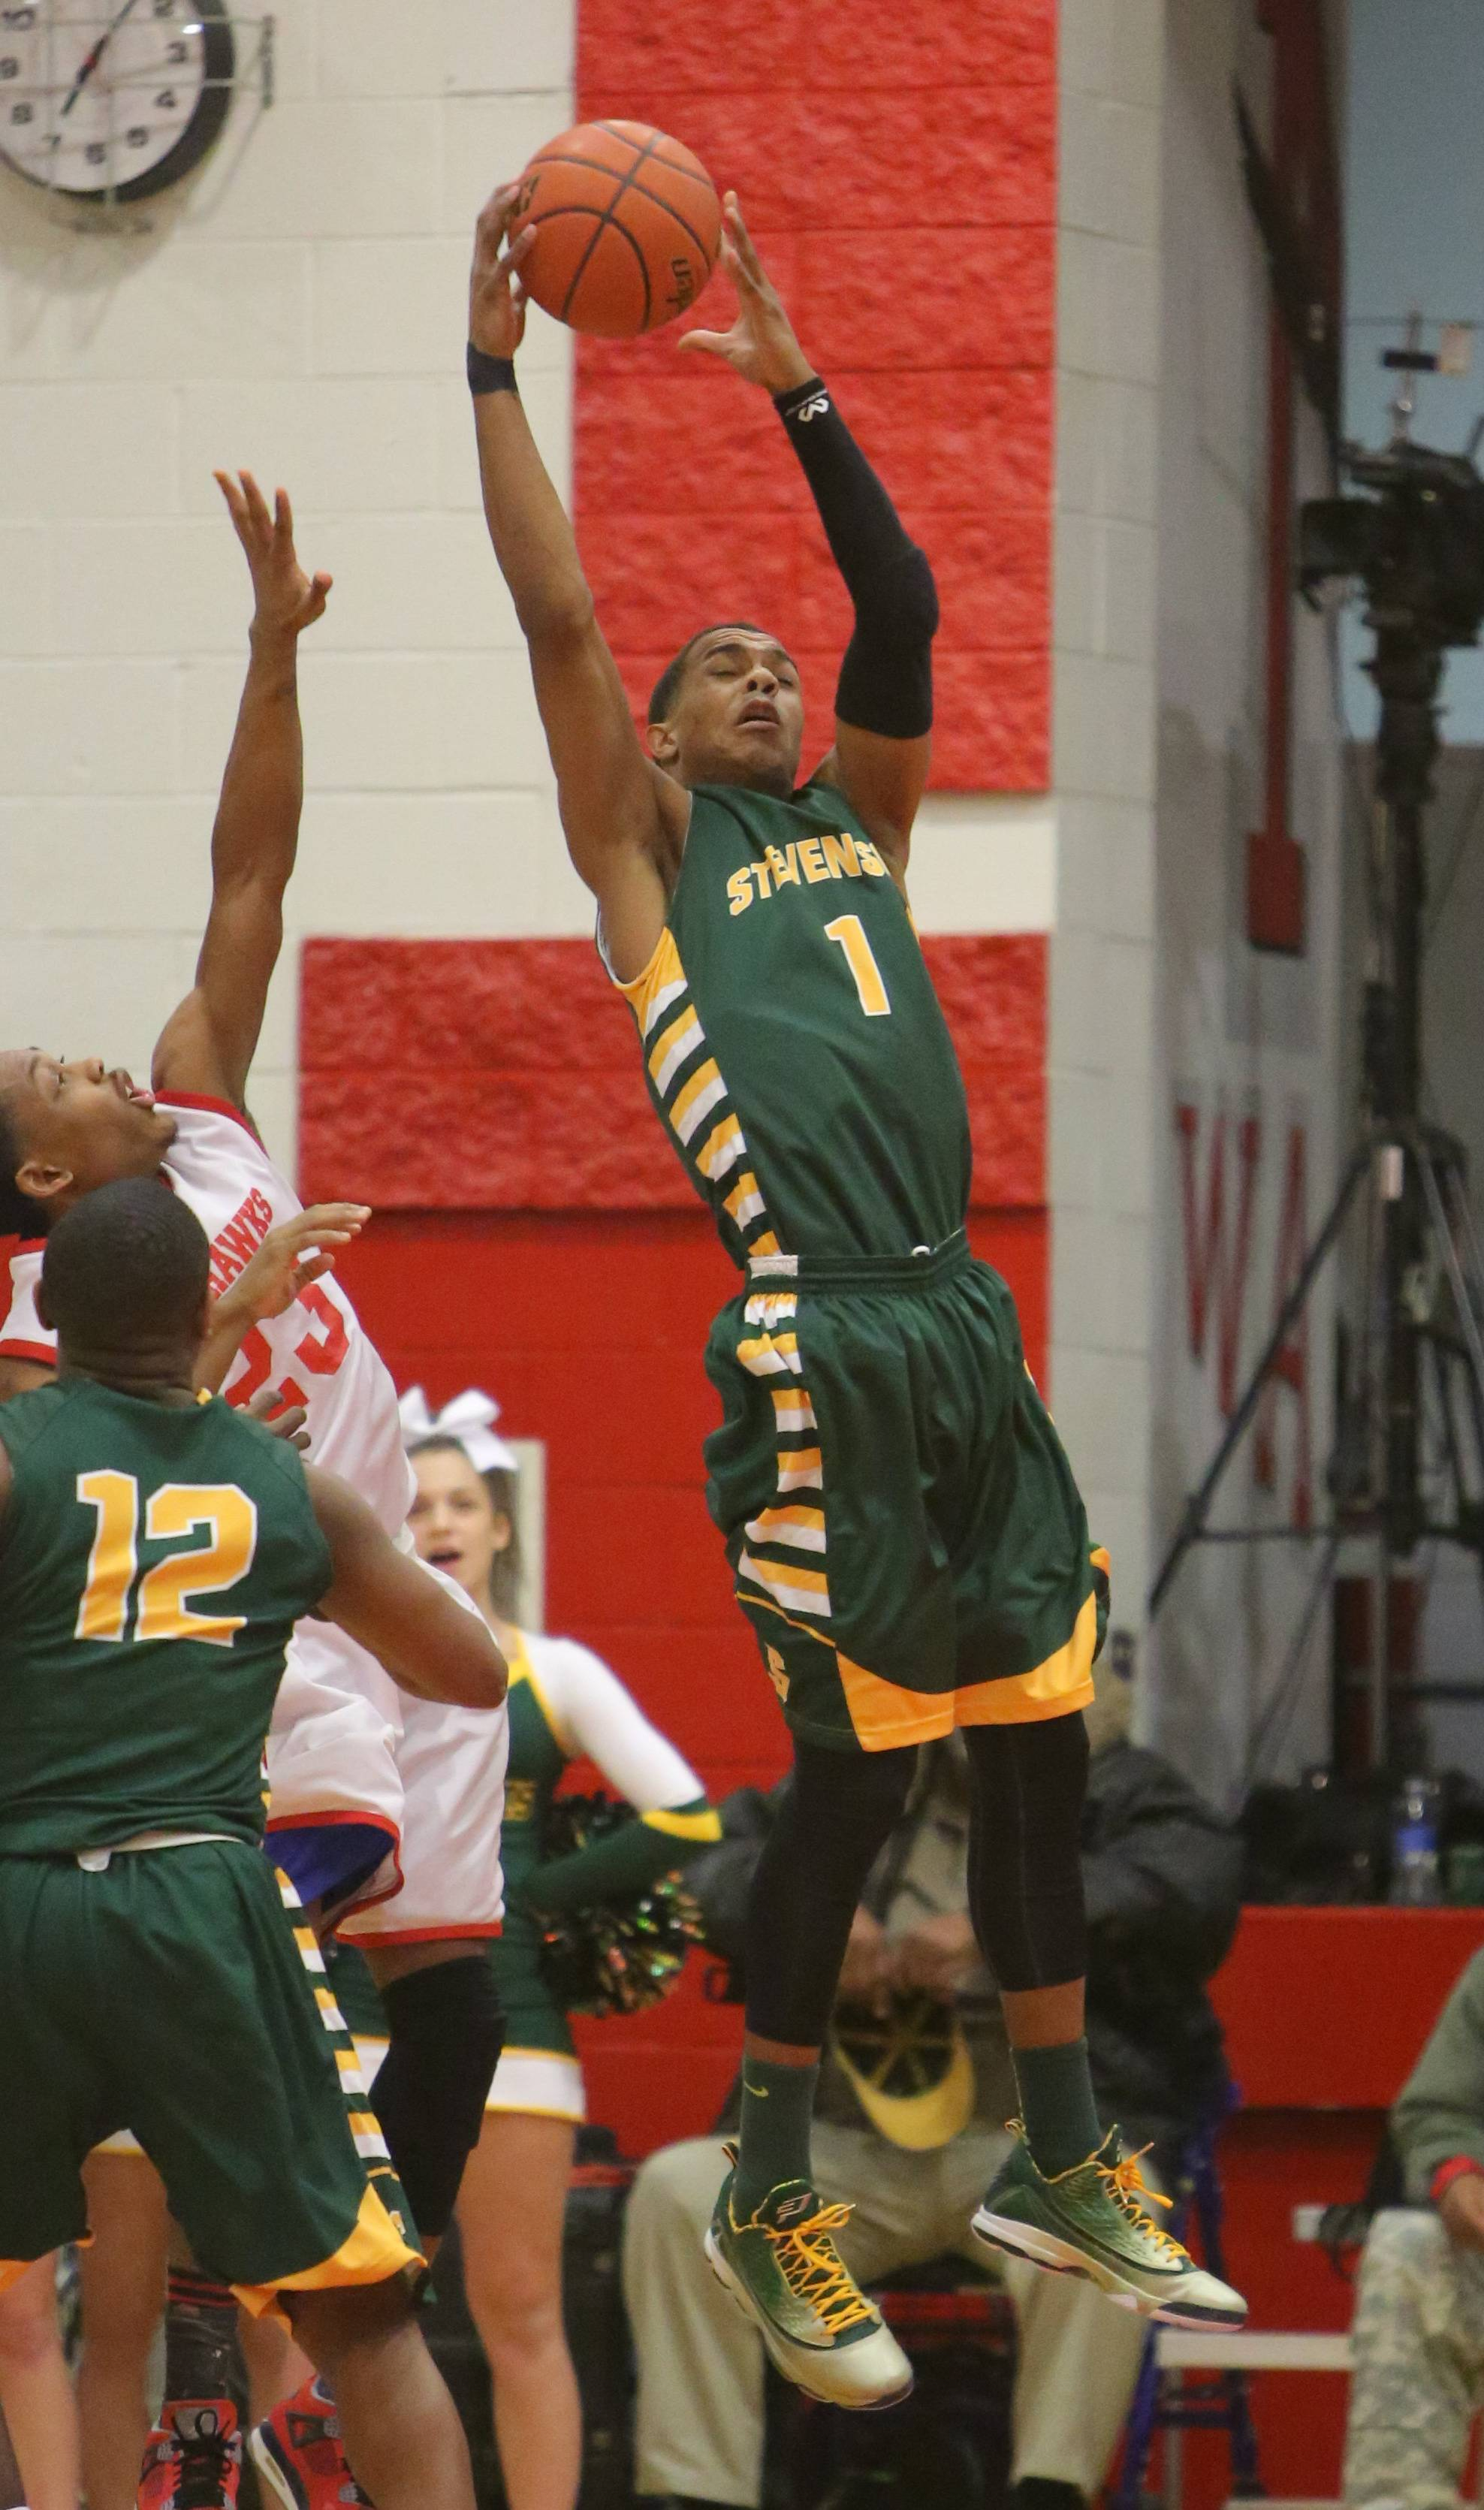 Images from the Stevenson vs. North Chicago boys basketball game on Wednesday, February 26 in North Chicago.